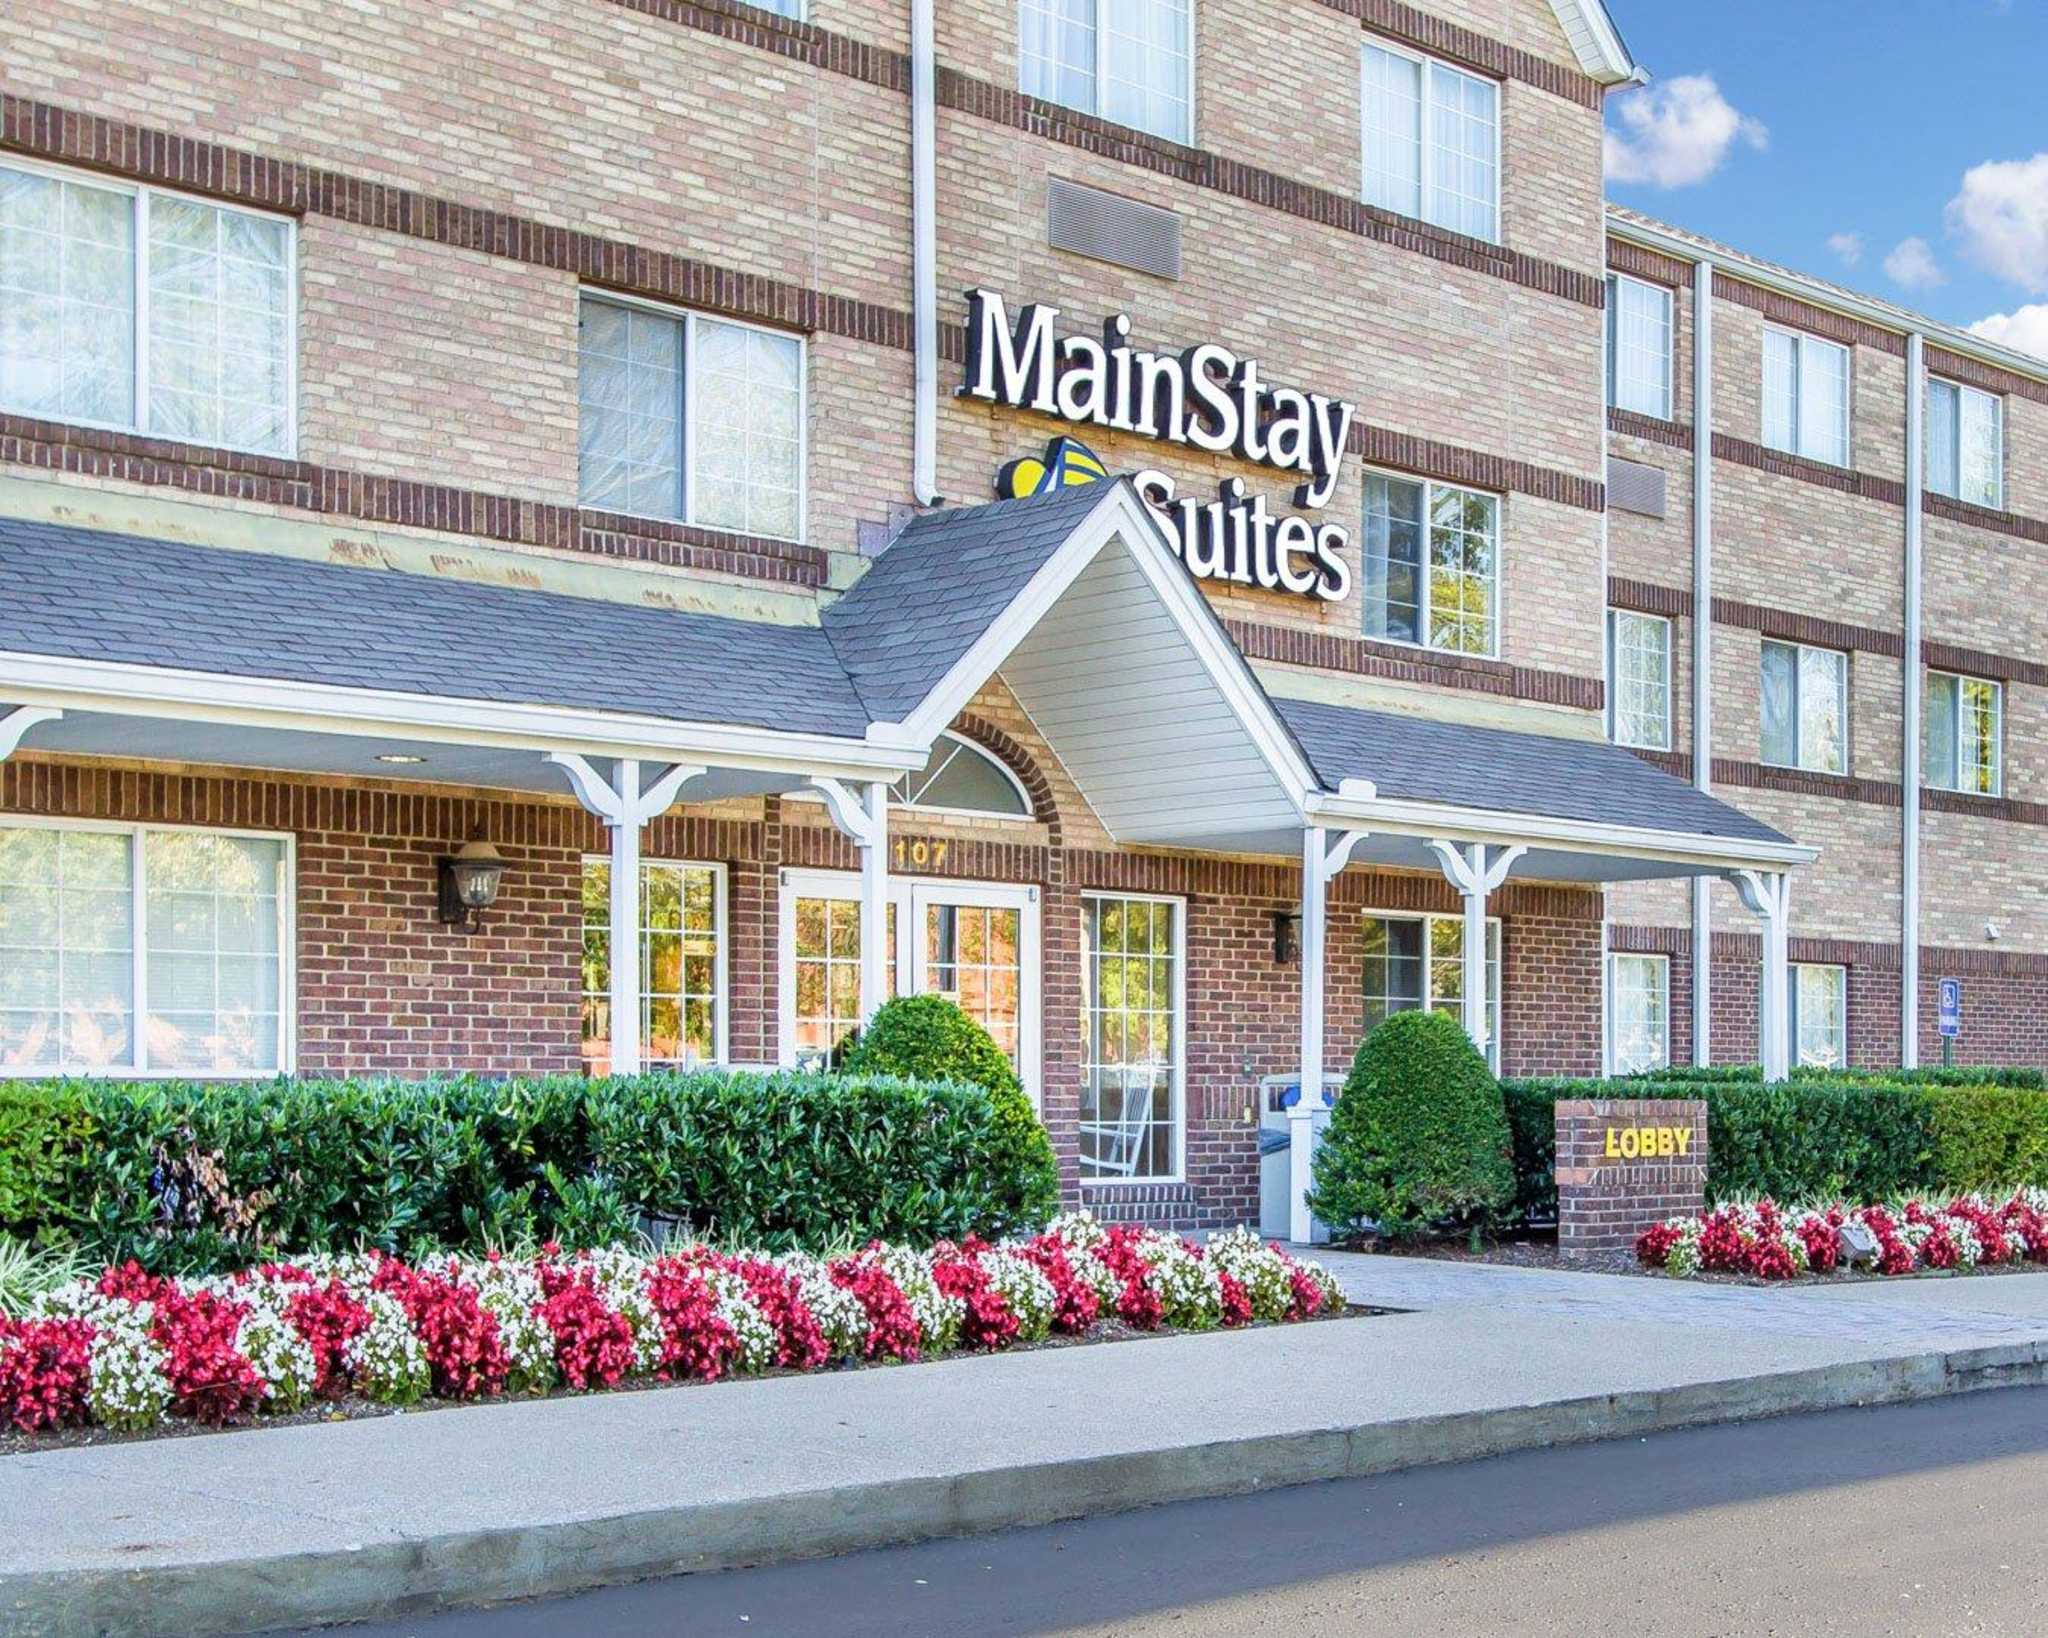 MainStay Suites image 2